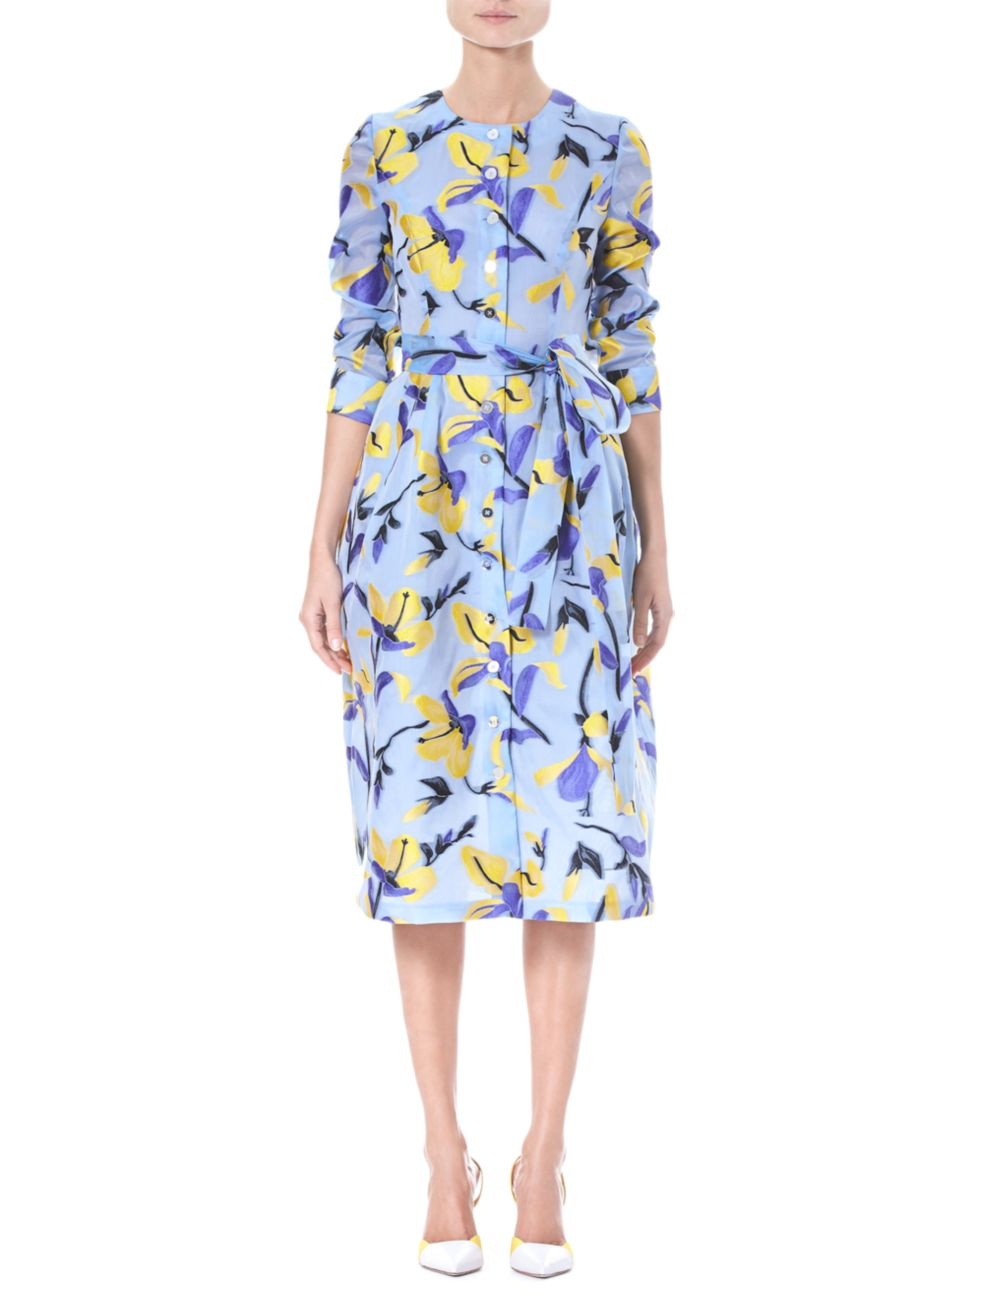 Carolina Herrera Shirt Dress